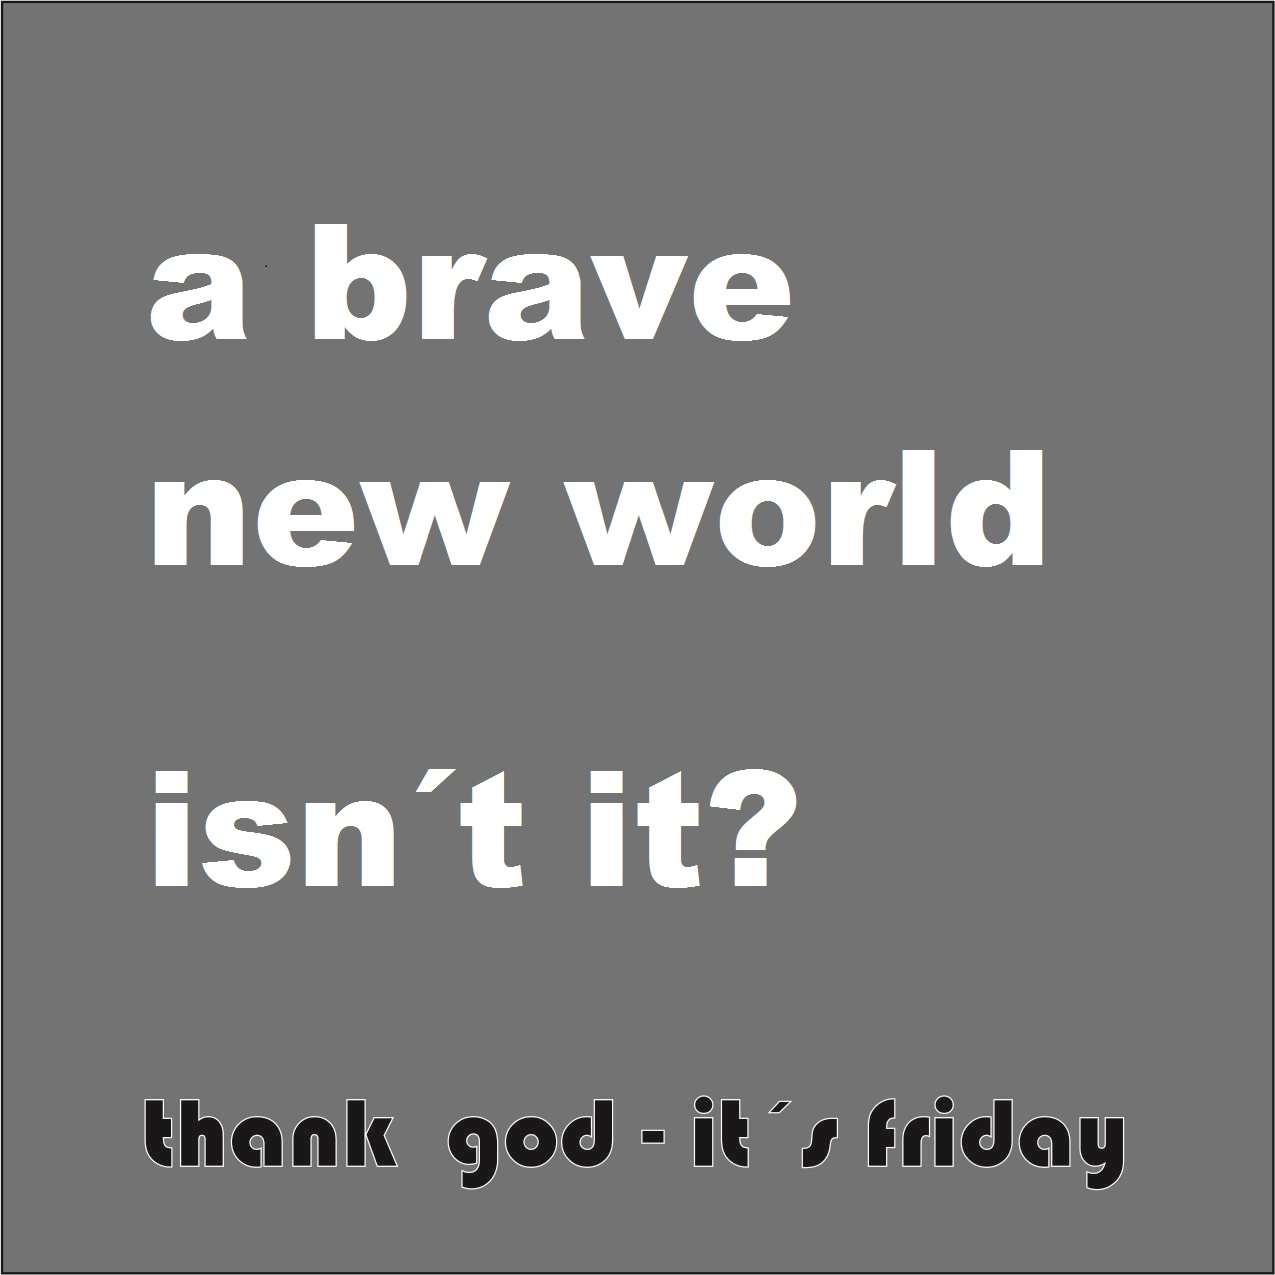 a brave new world - isn´t it?